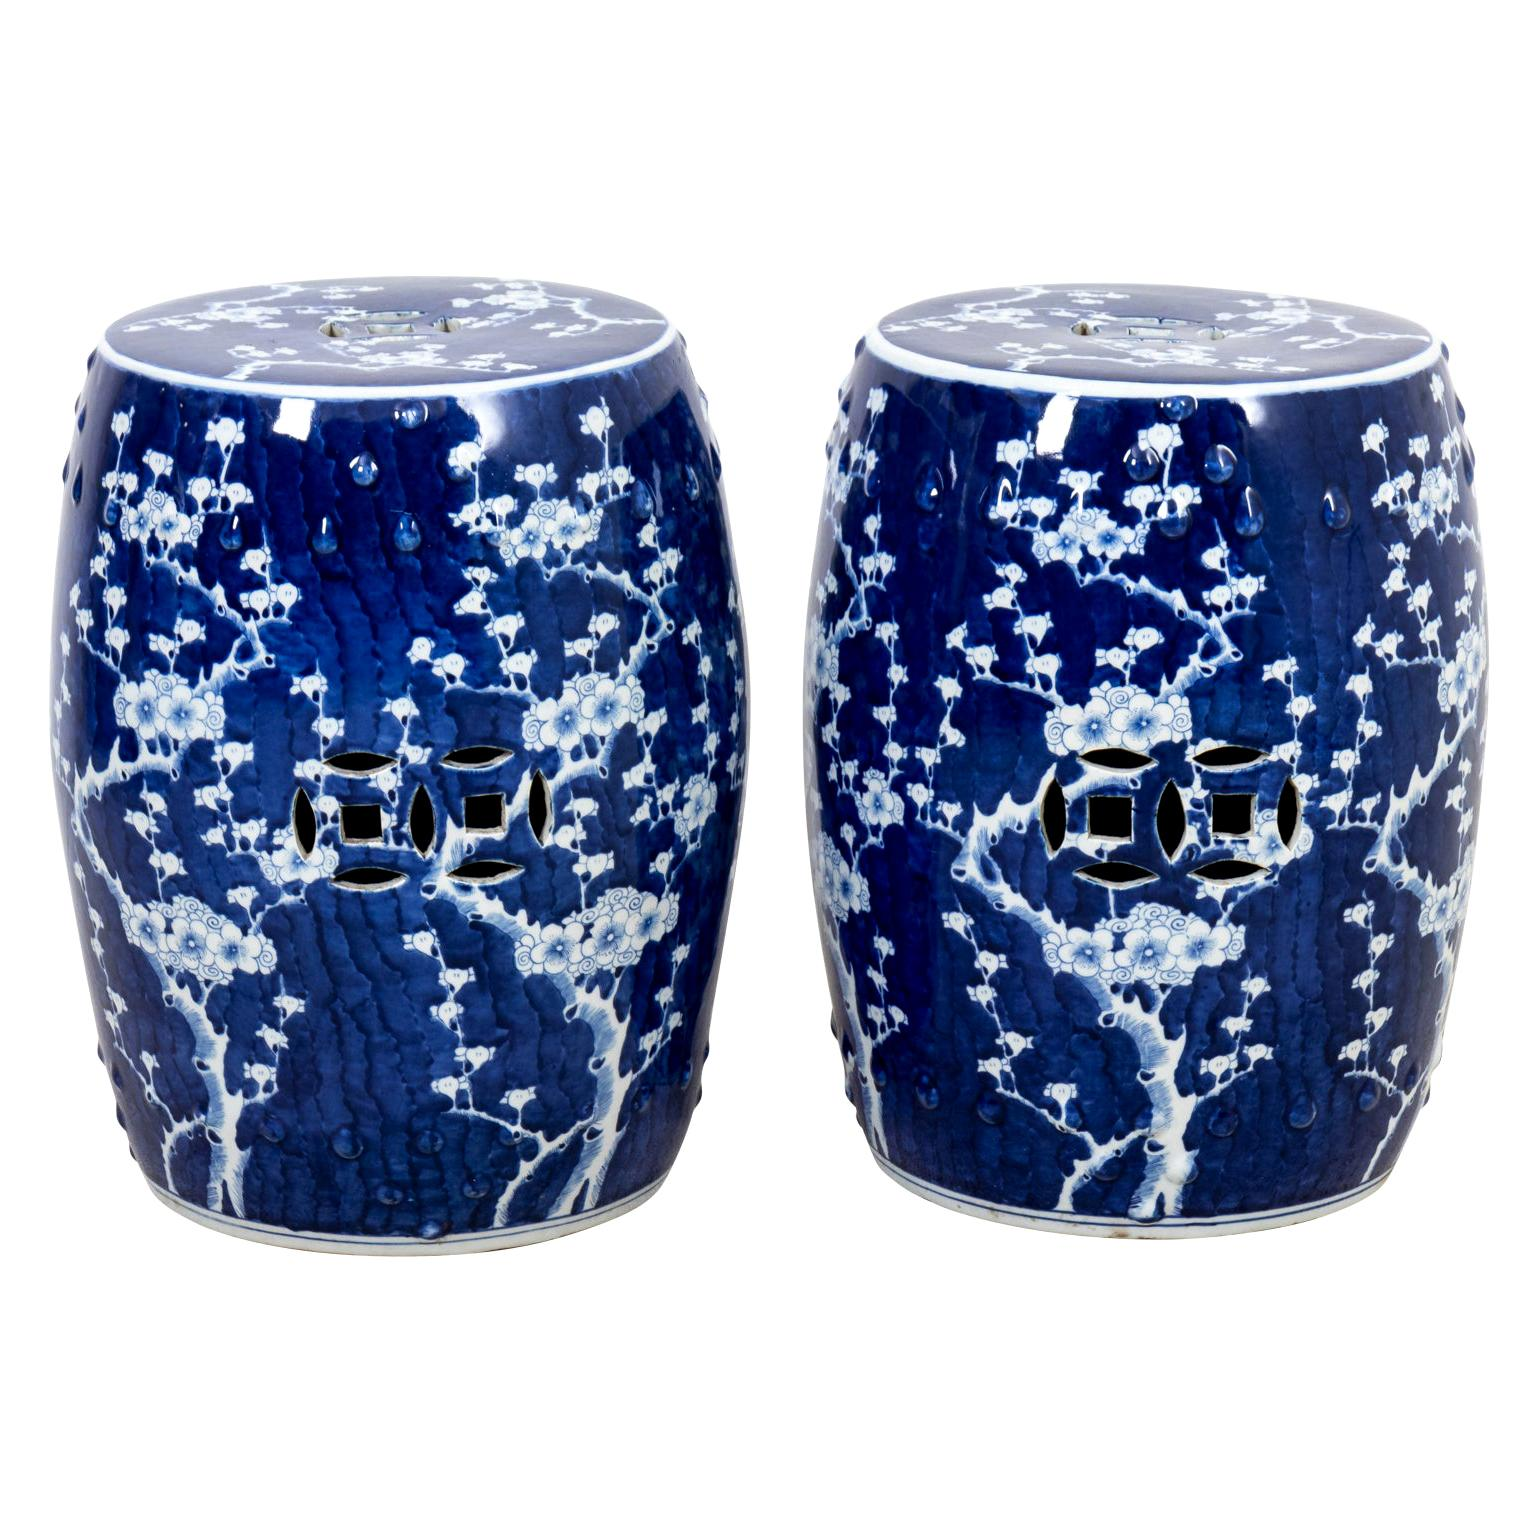 Pair of Vintage Chinese Export Blue and White Porcelain Garden Stools